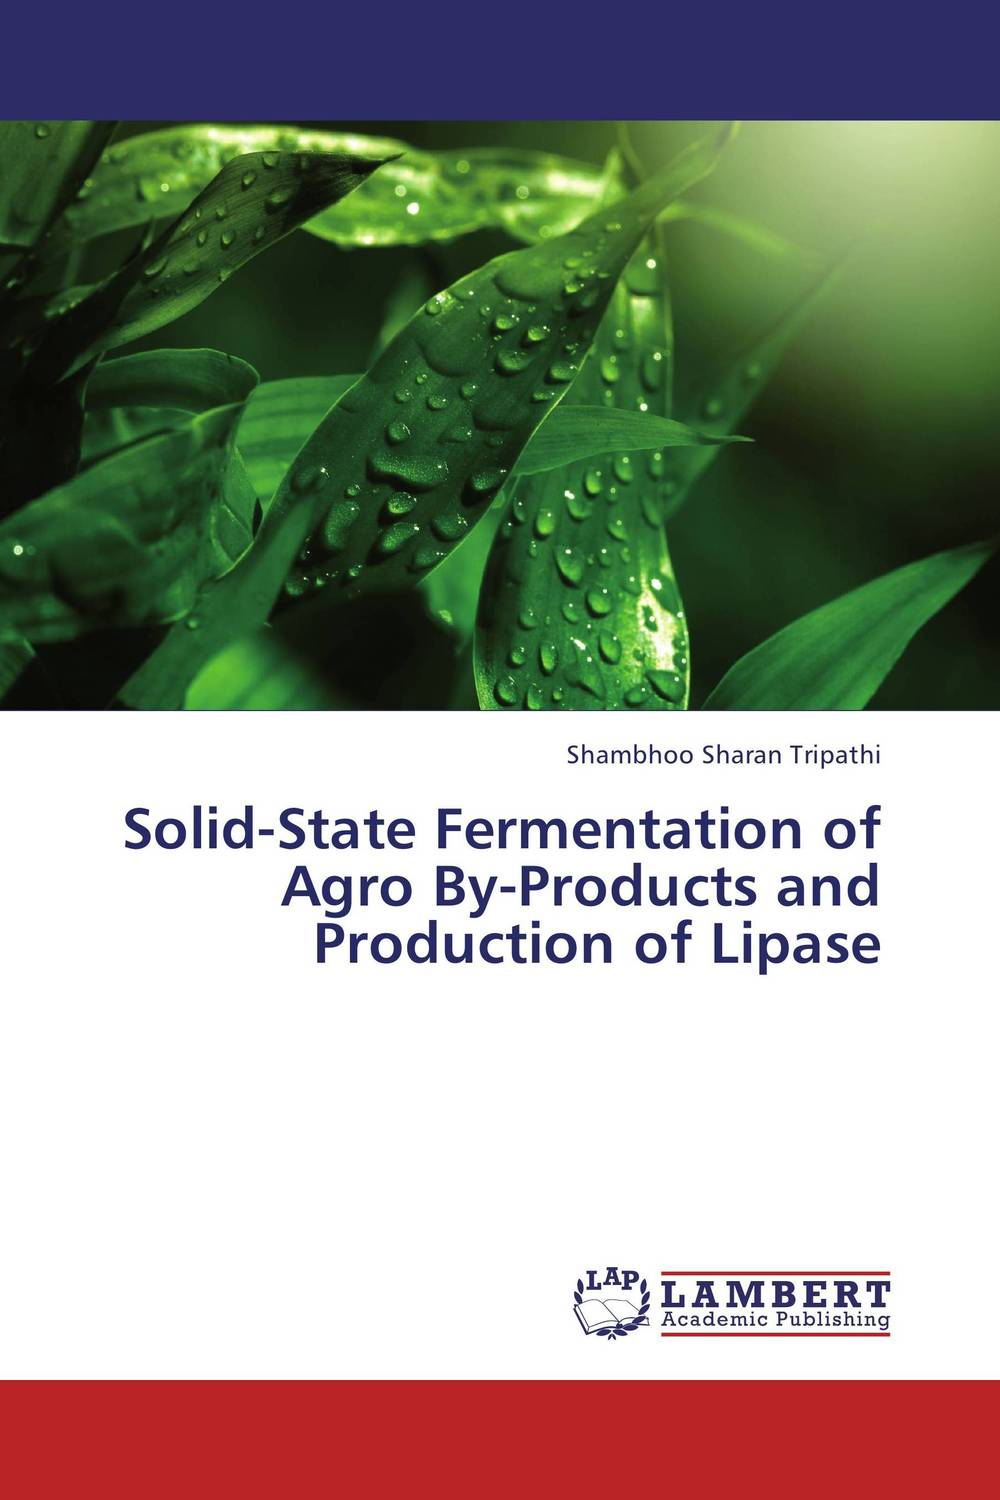 Solid-State Fermentation of Agro By-Products and Production of Lipase fermentation technology